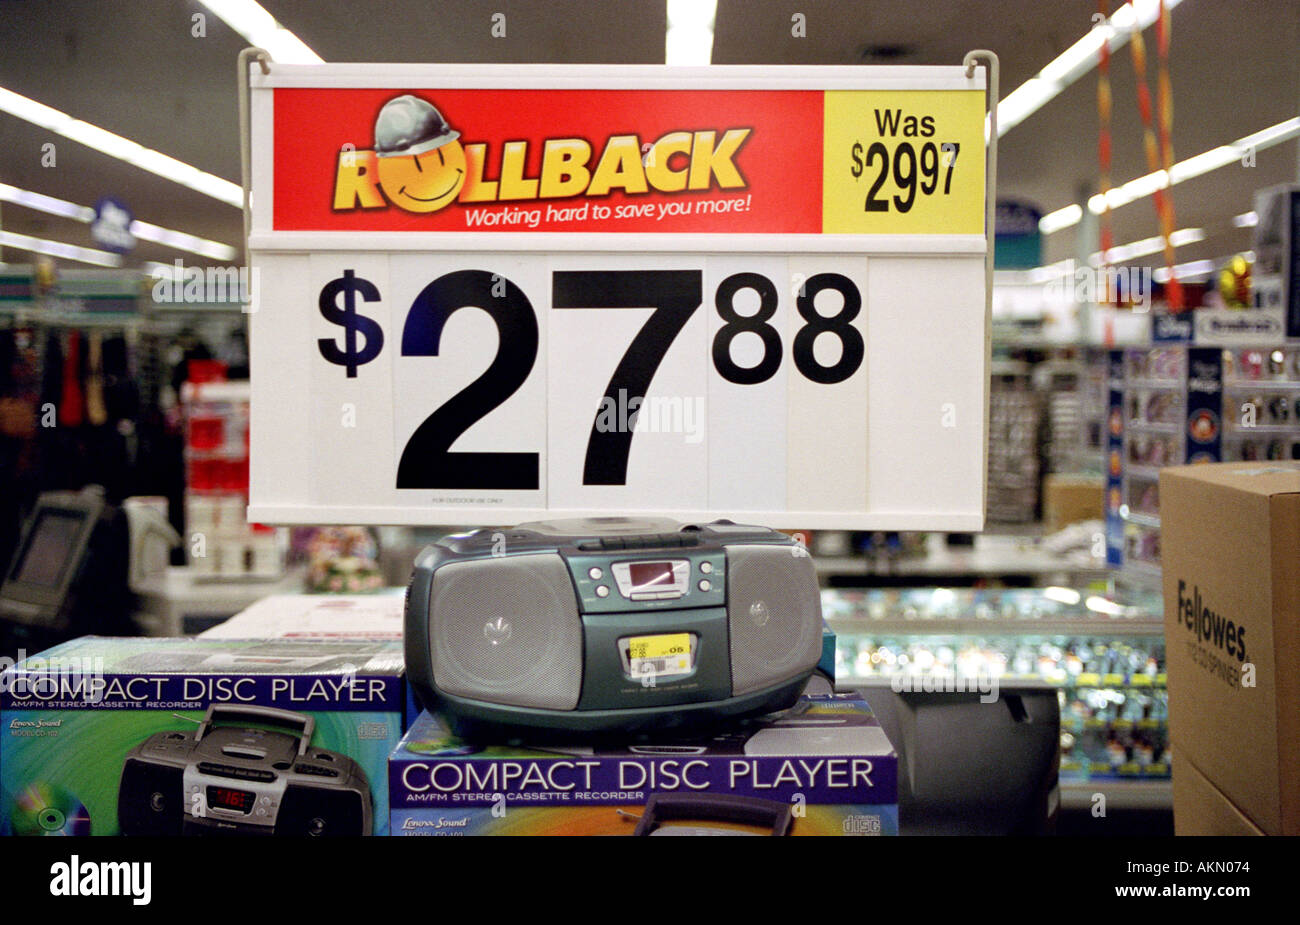 discount advertising products